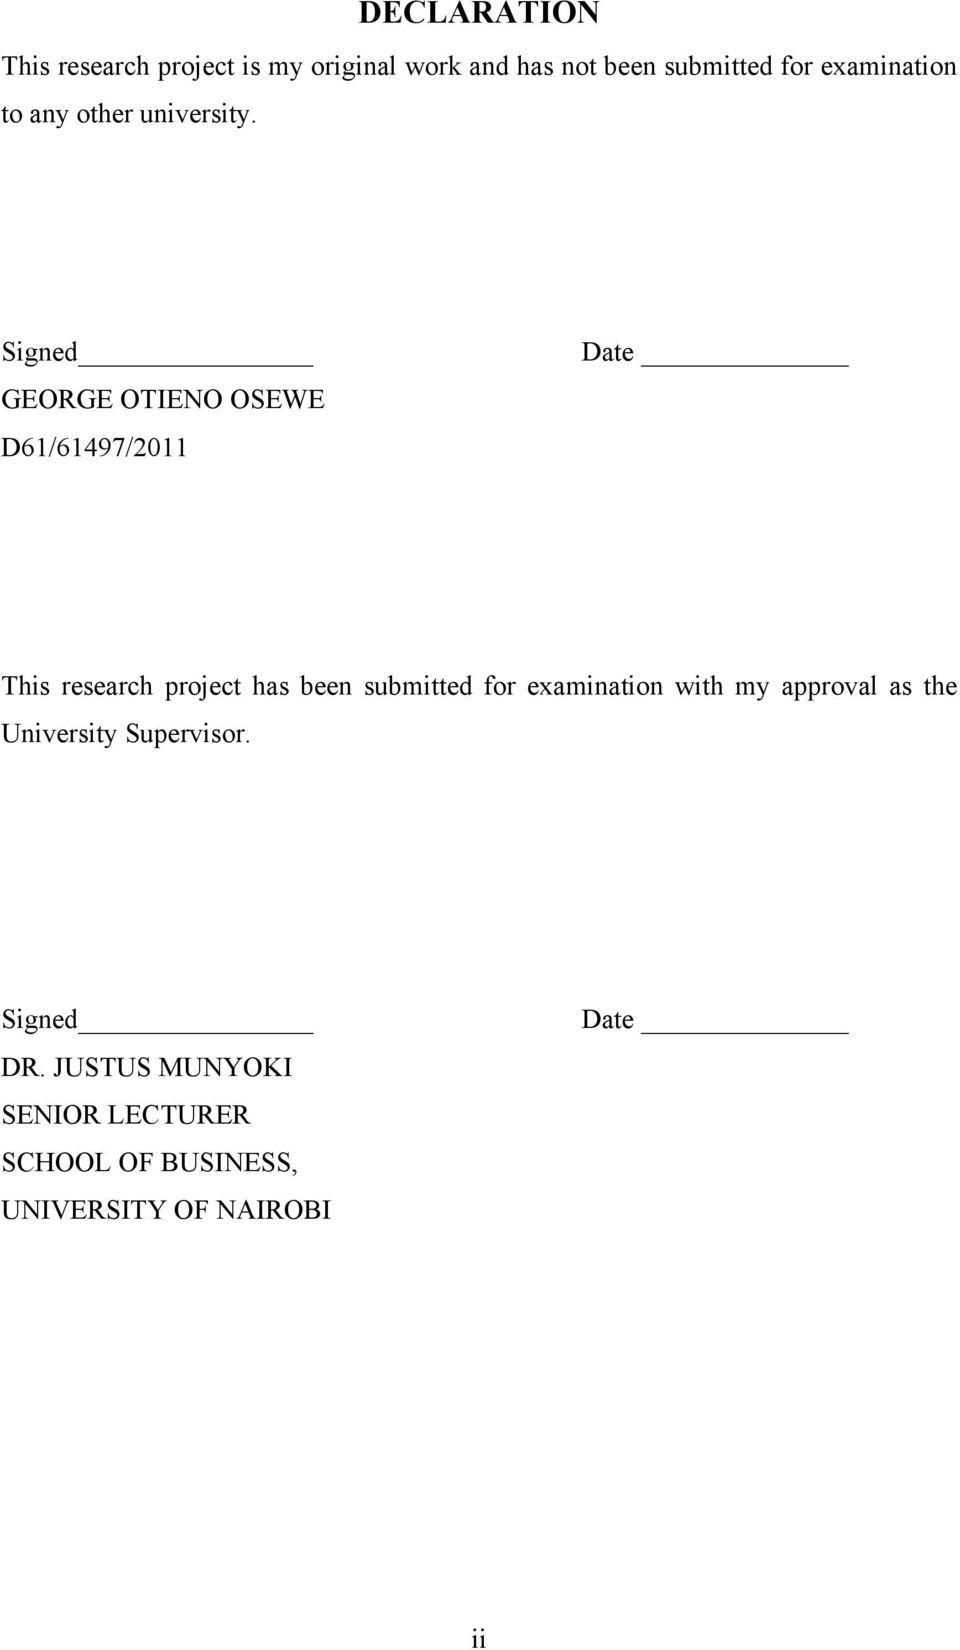 Signed GEORGE OTIENO OSEWE D61/61497/2011 Date This research project has been submitted